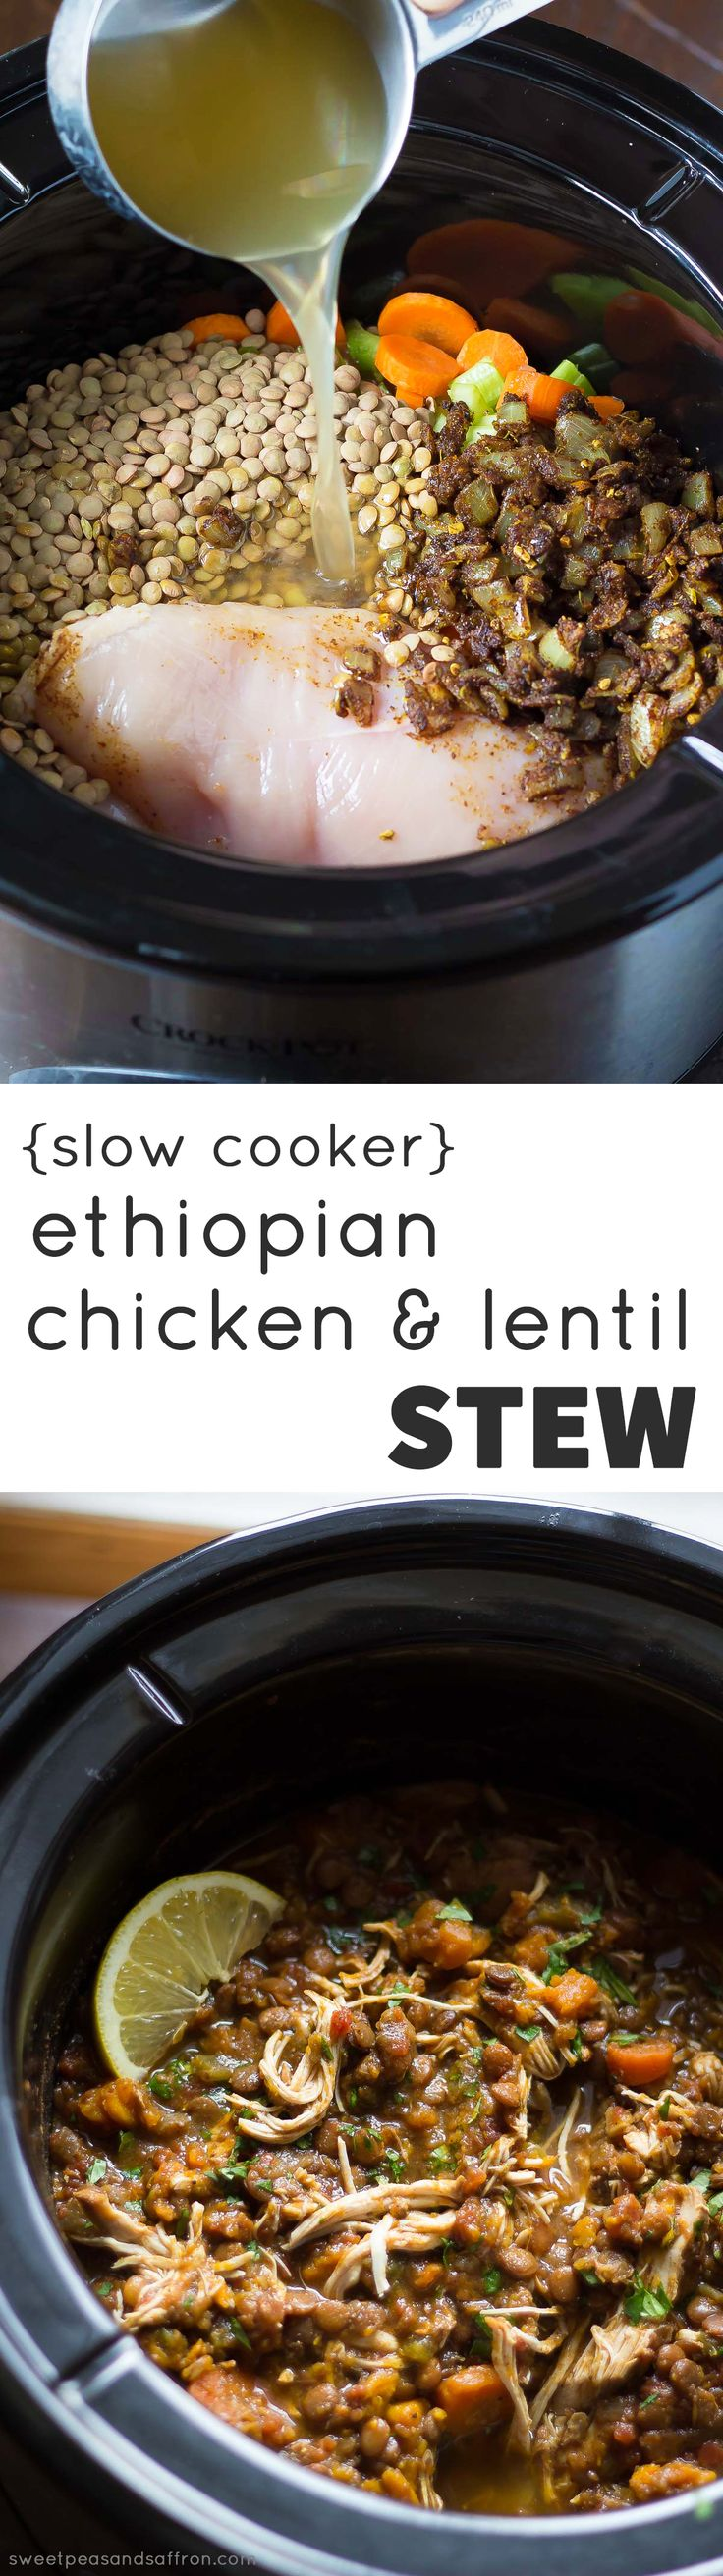 Slow Cooker Chicken & Lentil Ethiopian Stew, made with sweet potatoes and carrots.